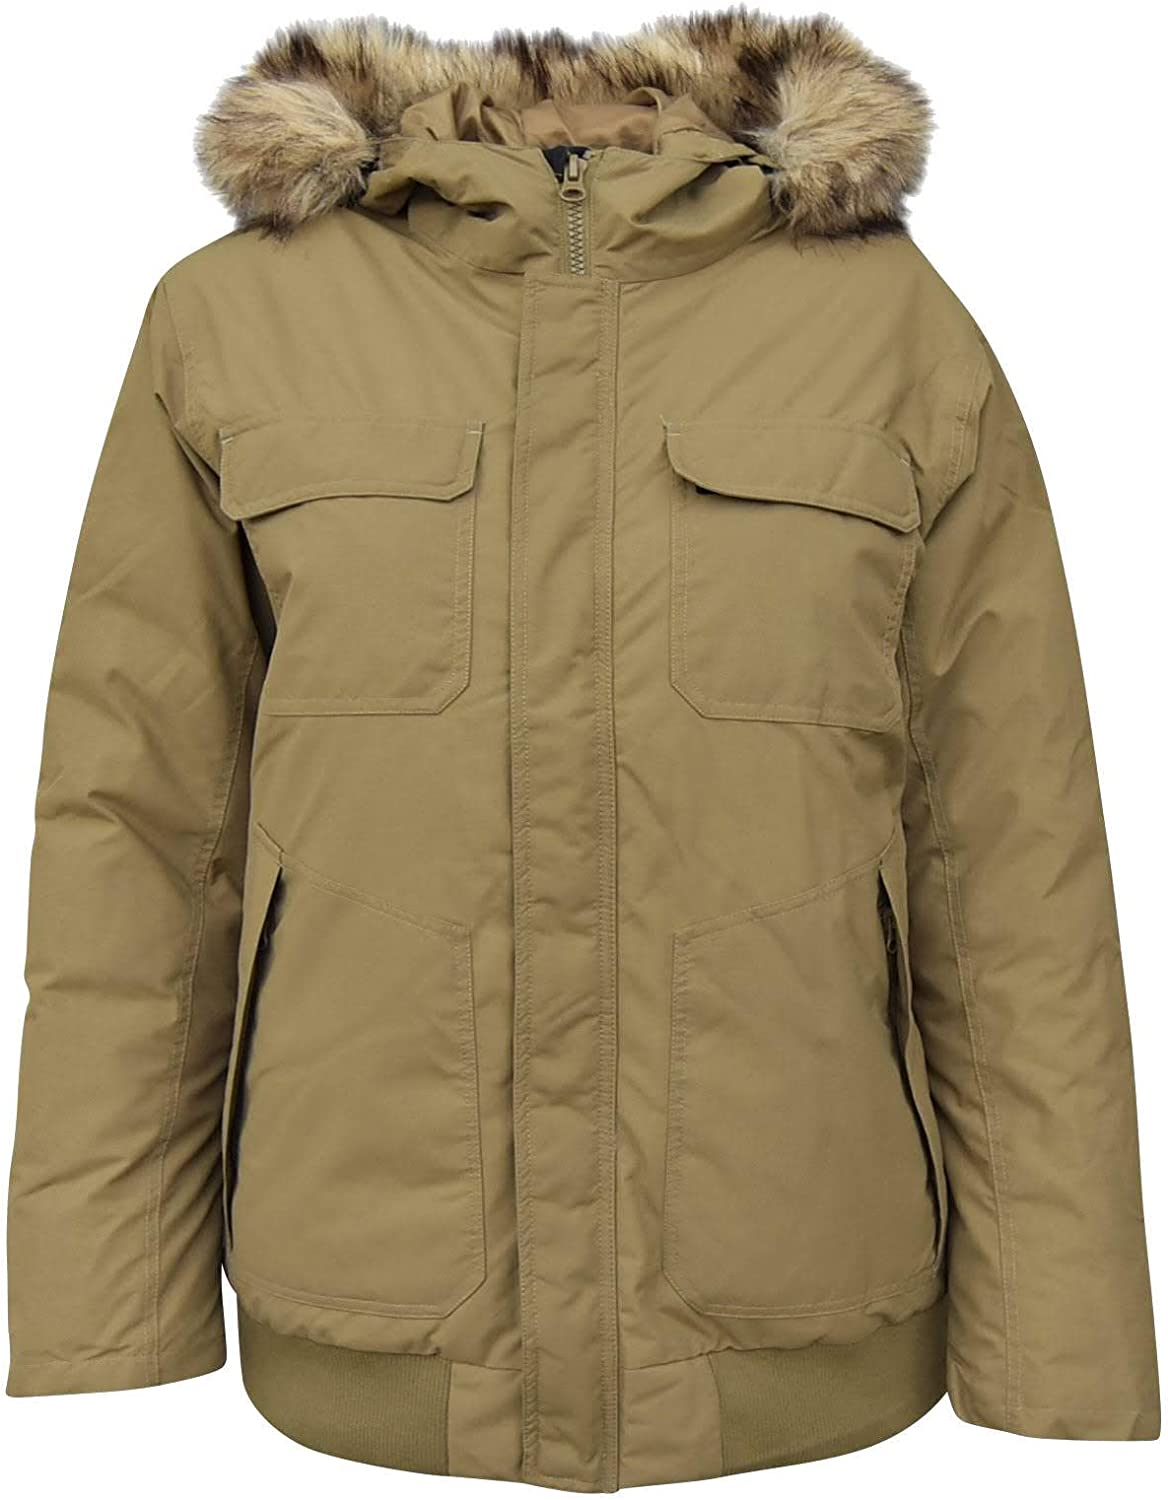 Snow Country Outerwear Mens Wayland Insulated Bomber Jacket Coat Down Alternative